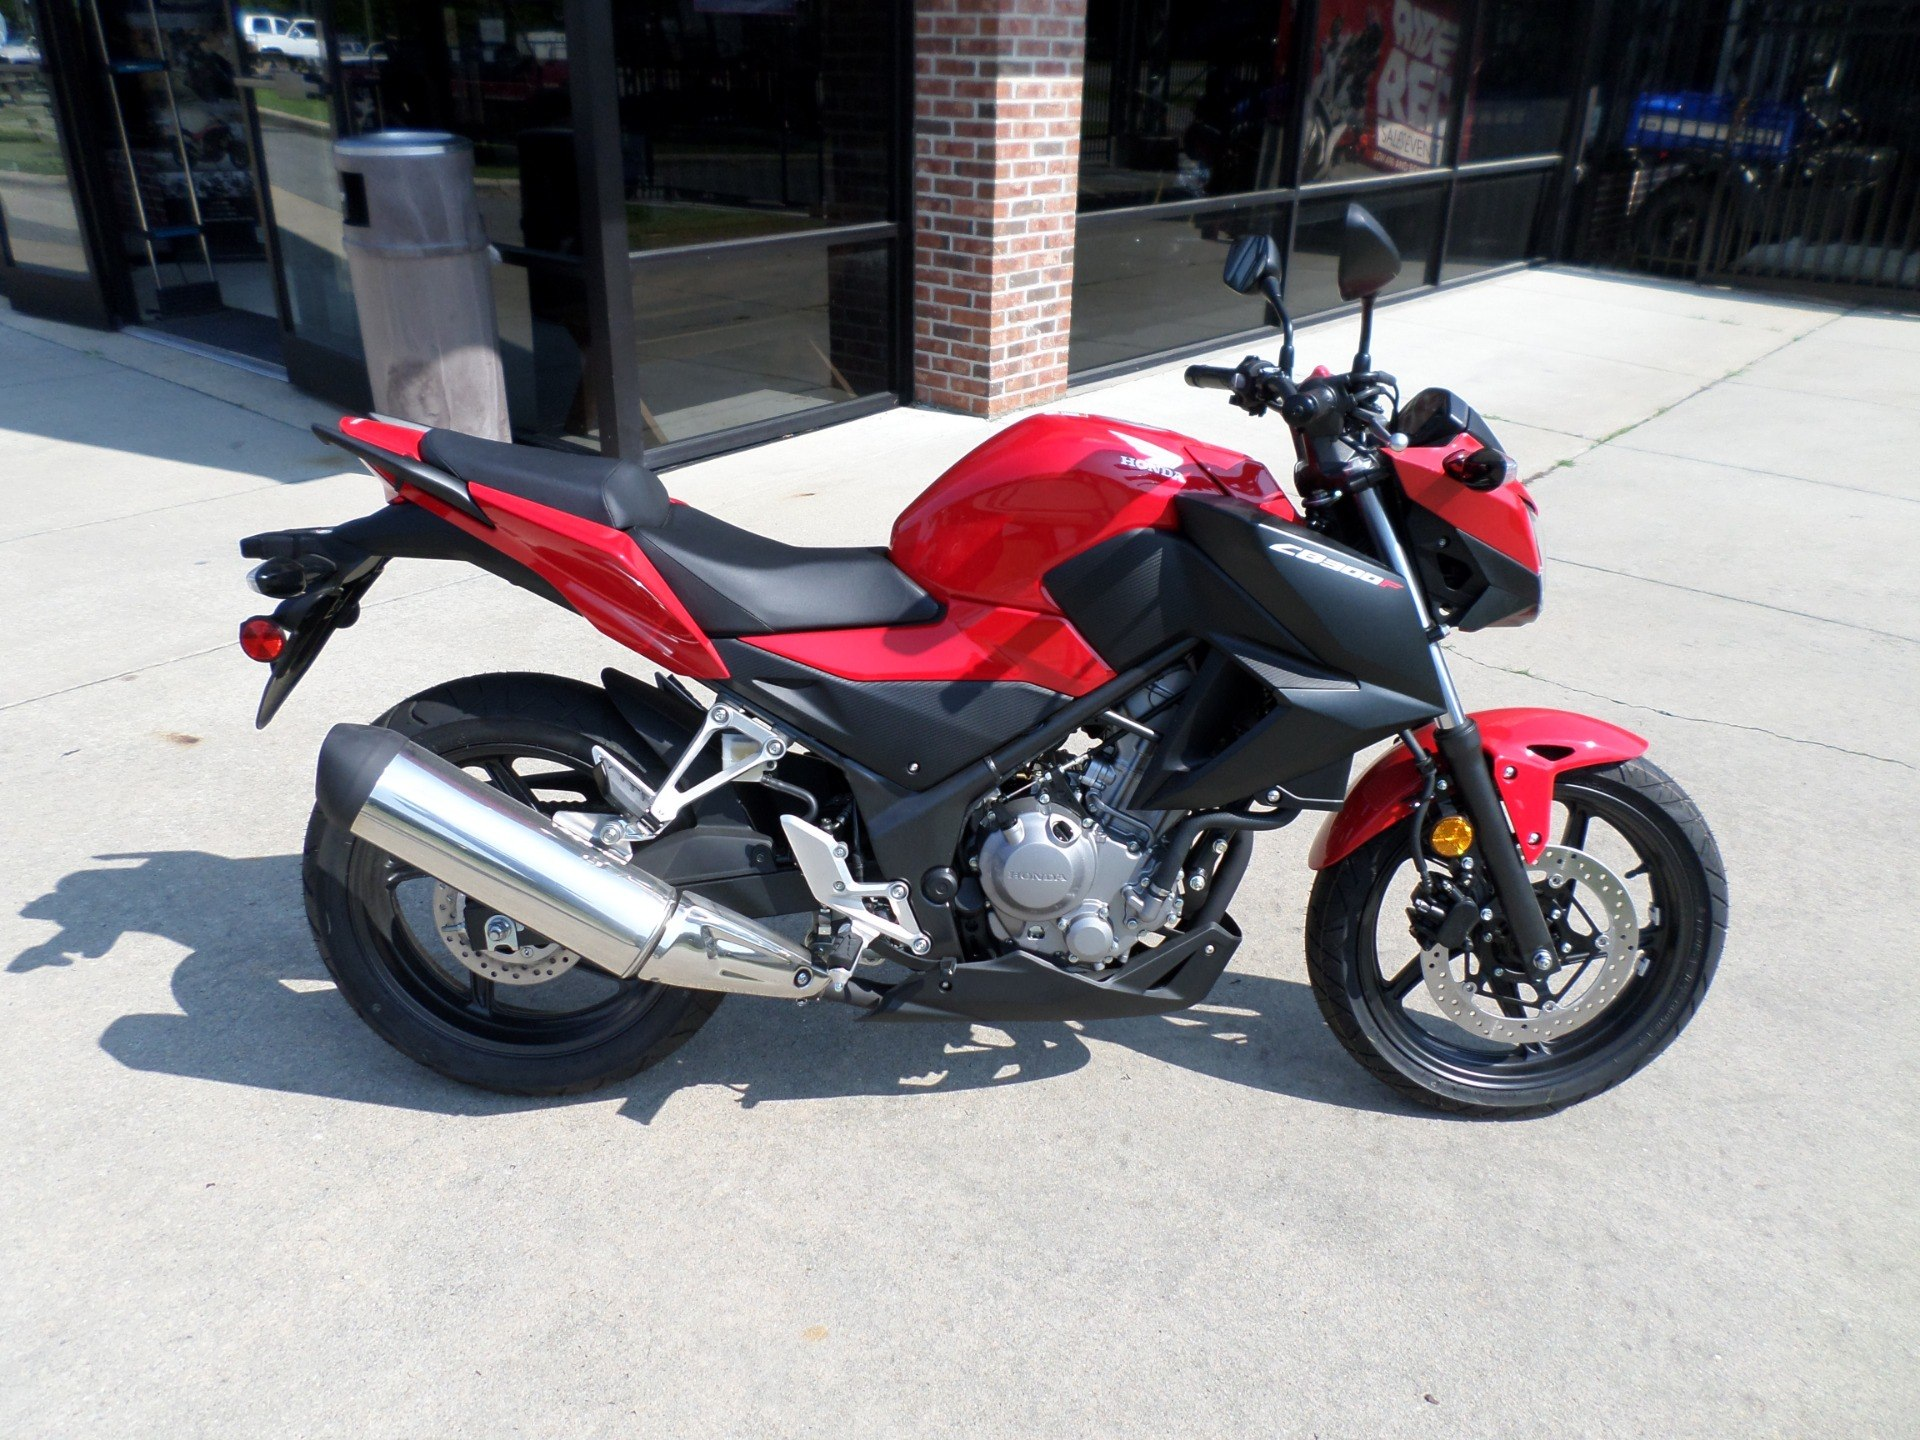 Scooters For Sale Greenville Nc >> 2015 Honda CB300F For Sale Greenville, NC : 8883